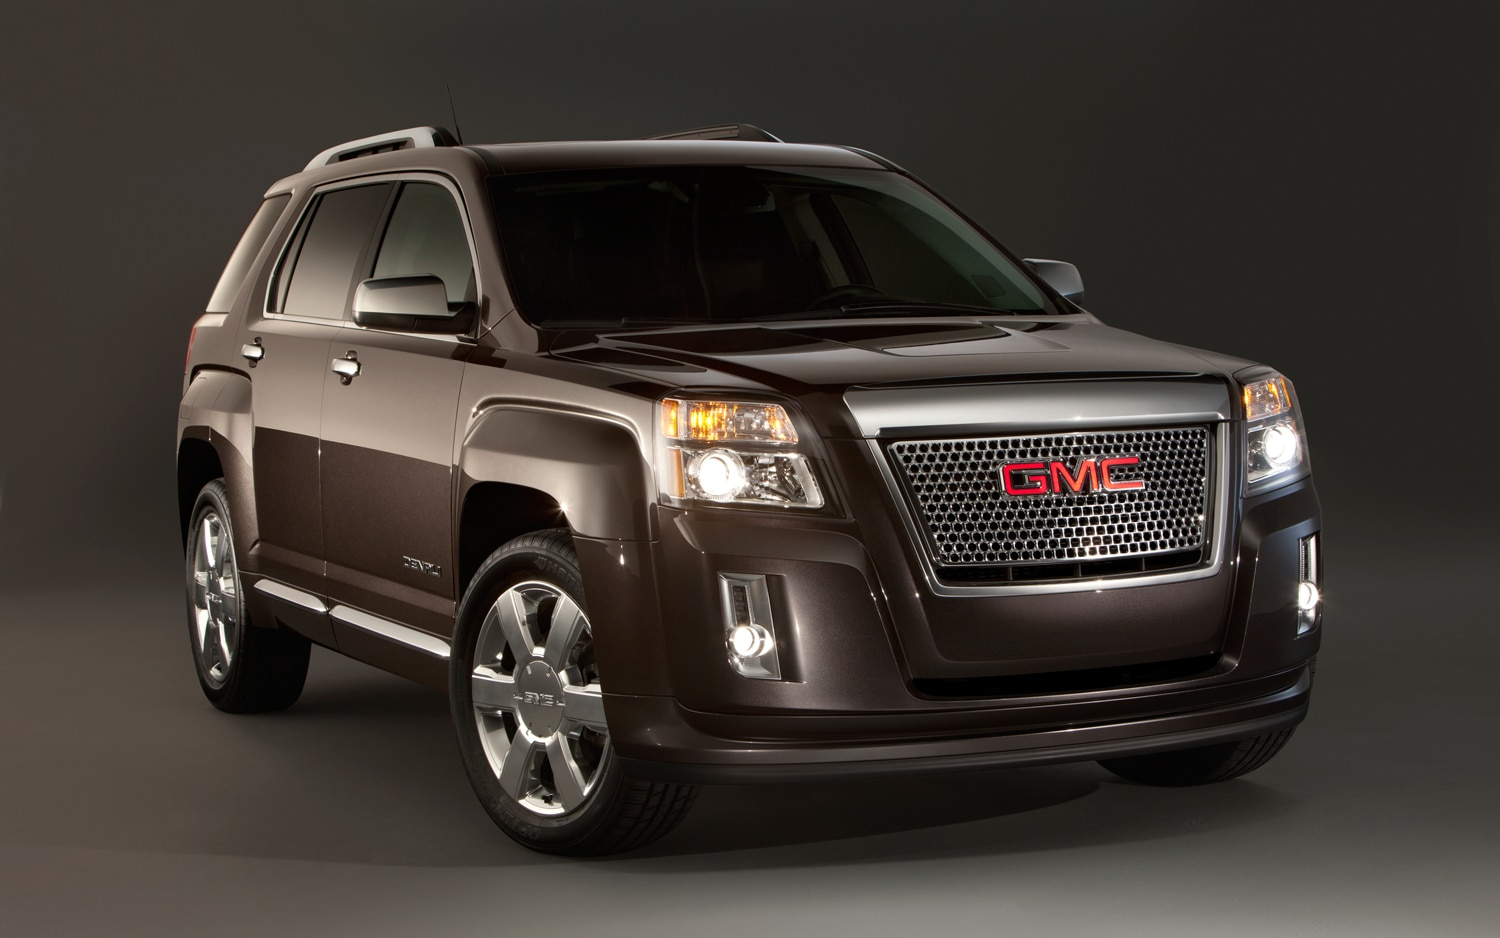 2013 GMC Terrain Denali Pricing Starts at $35,350